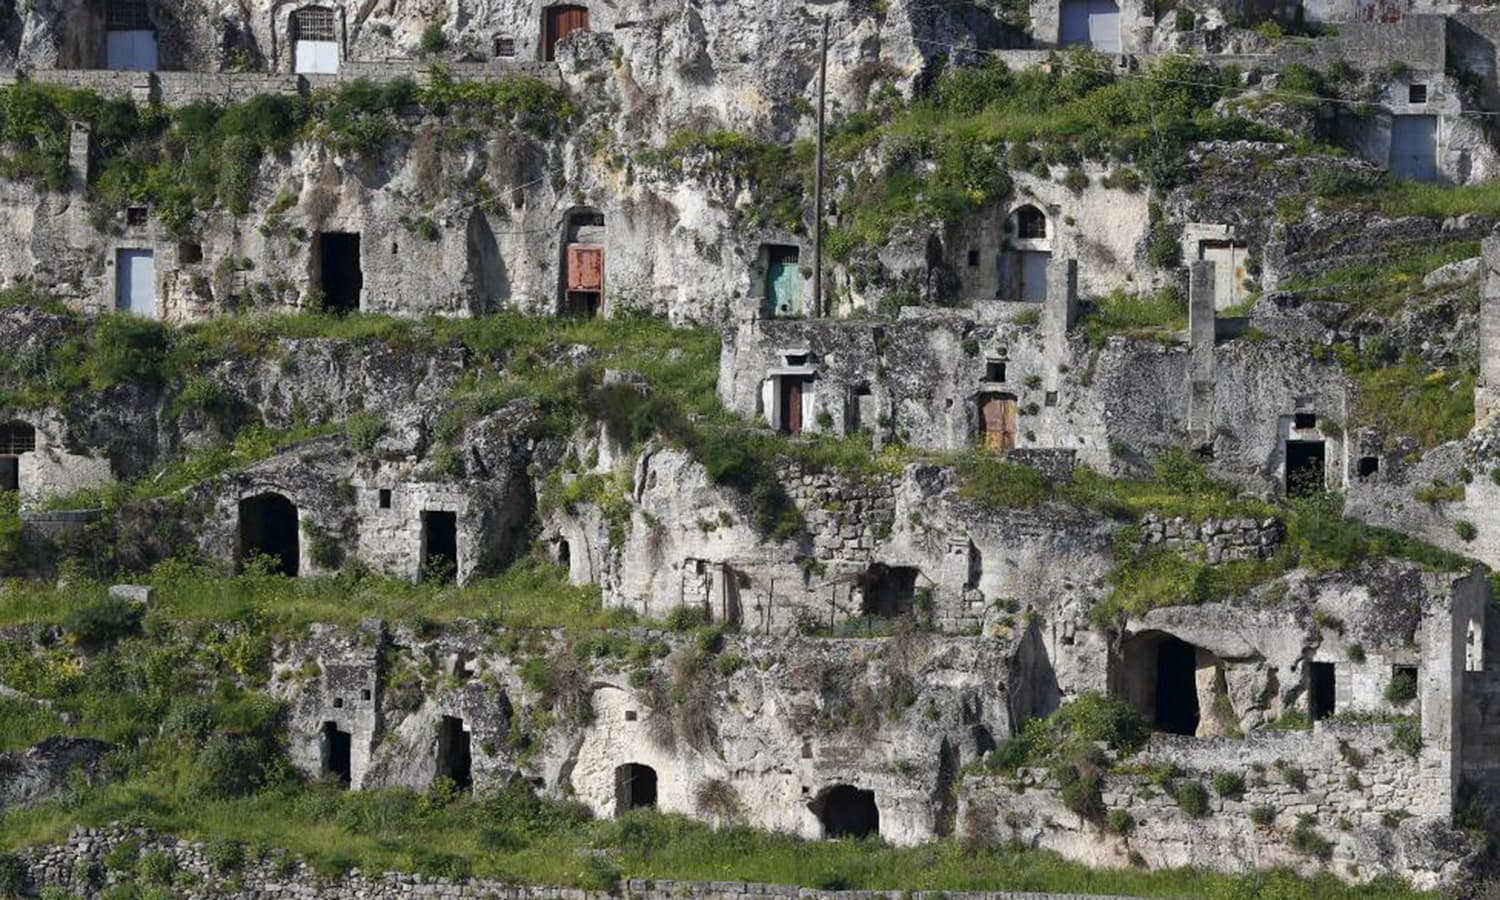 A general view of Matera's Sassi limestone cave dwellings in southern Italy April 30, 2015. The fact that until the fascist leader Mussolini's rise to power in the 1930s the caves didn't have electricity but were teeming with people who kept their livestock inside was what so shocked Levi. Post-war social planners relocated the inhabitants and perhaps most of the Sassi were left vacant.